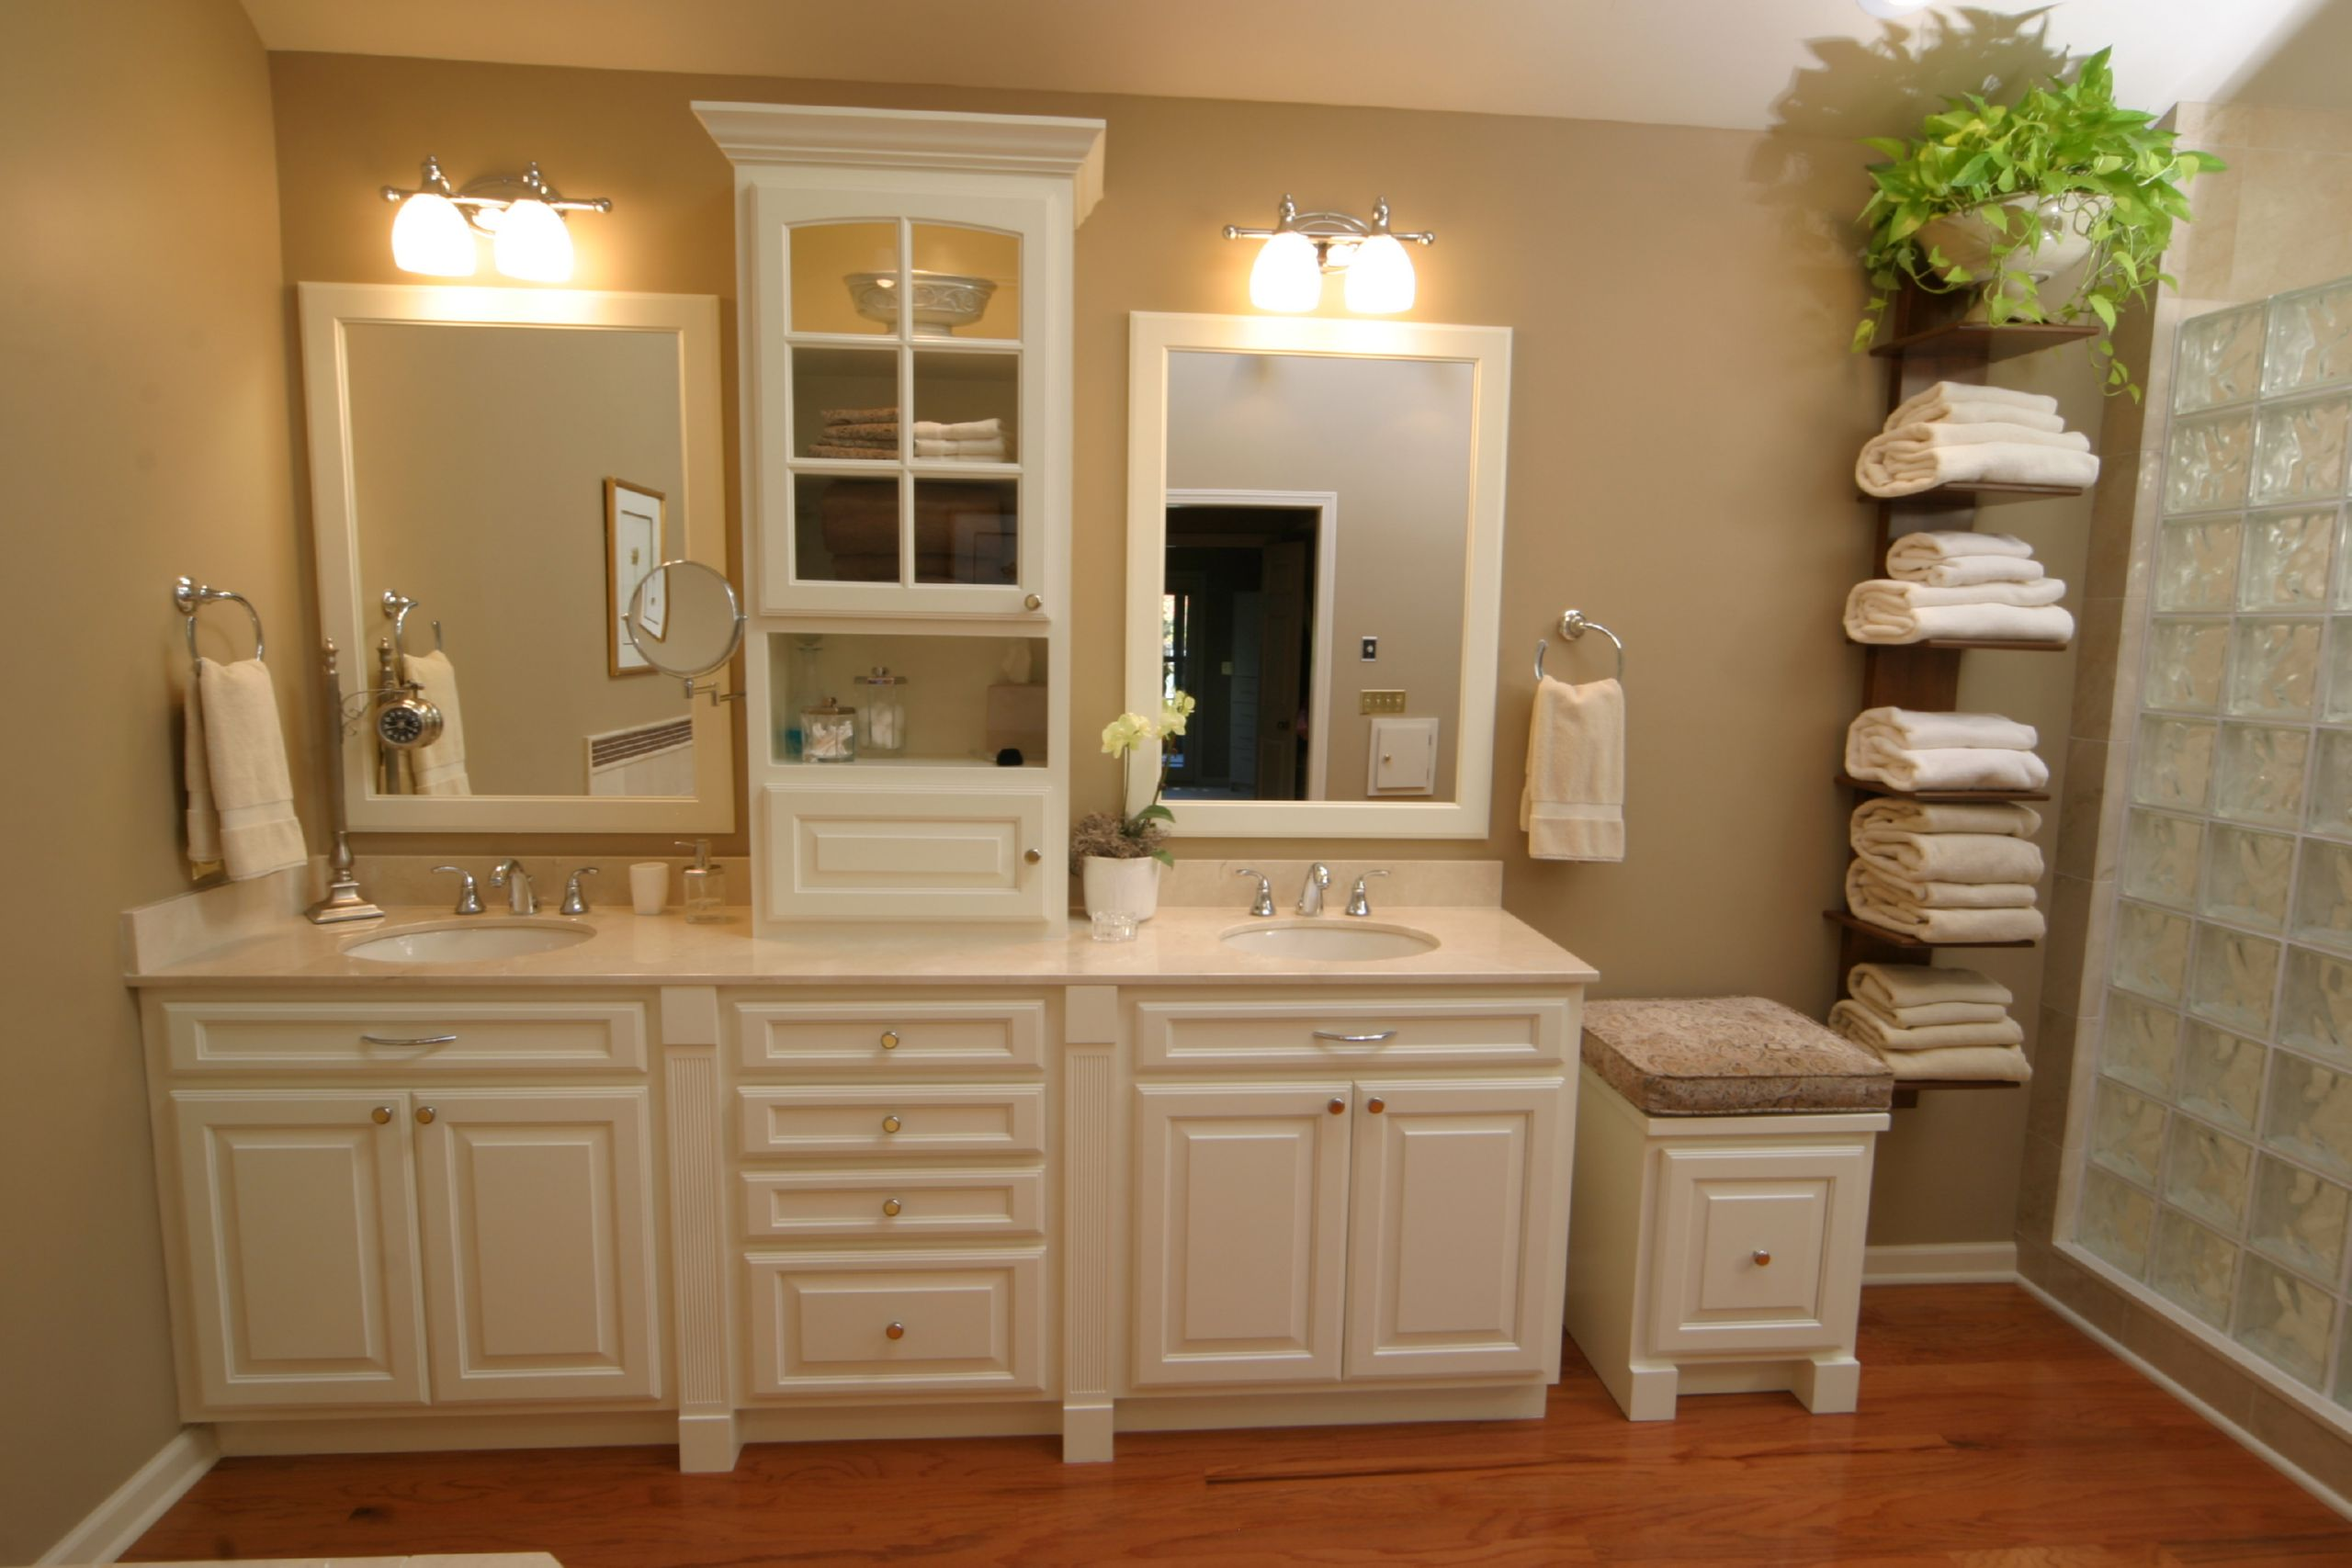 Bathroom remodeling bath remodel contractor for Bathroom improvements